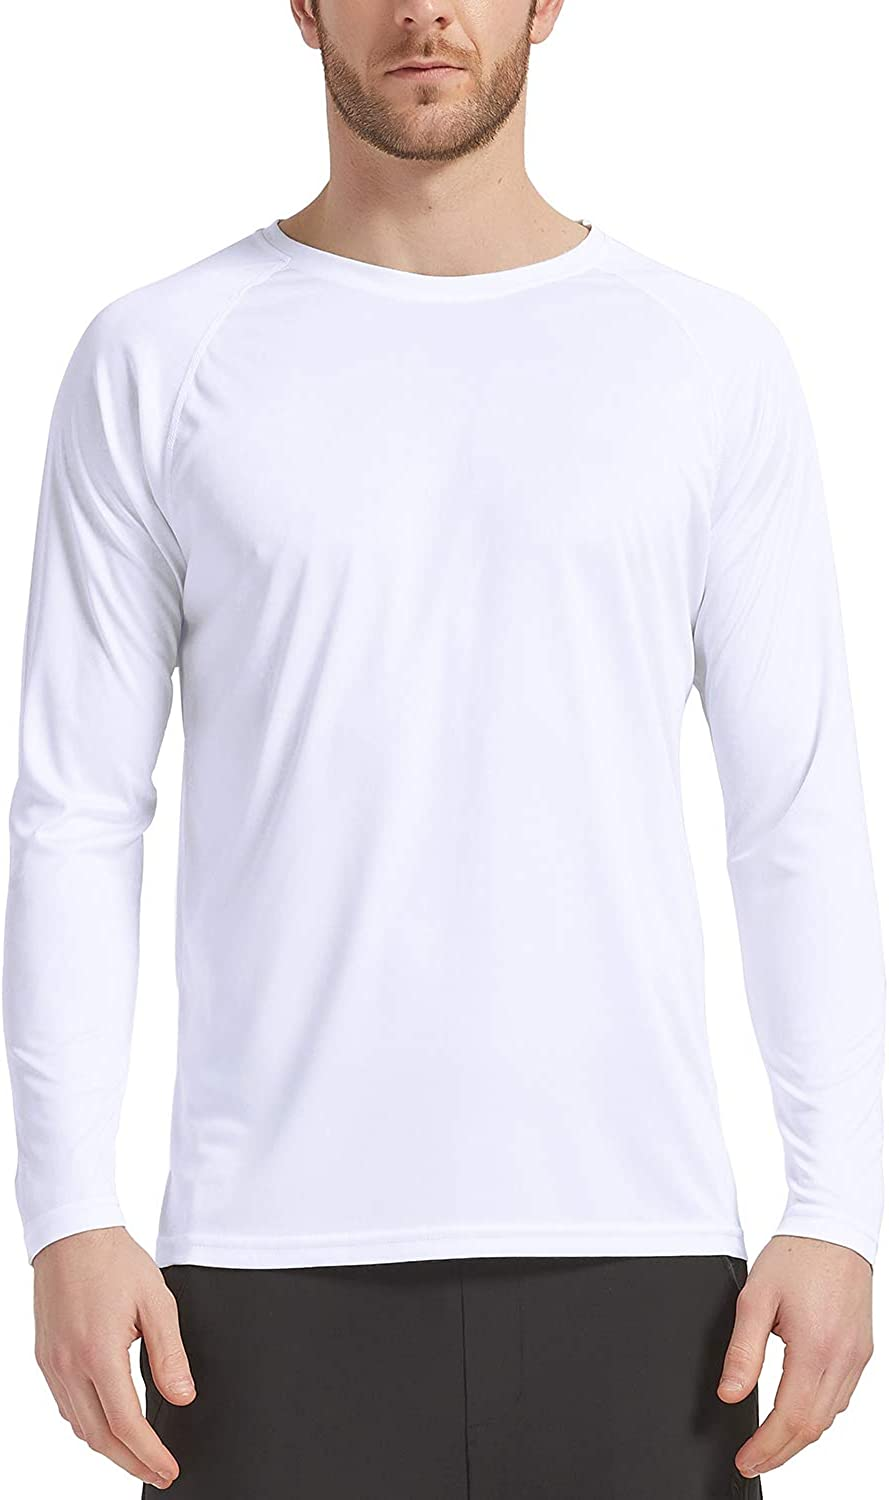 Sun Protection CQC Mens Outdoor Long Sleeve T-Shirt Quick Dry Athletic Running Shirts UPF 50